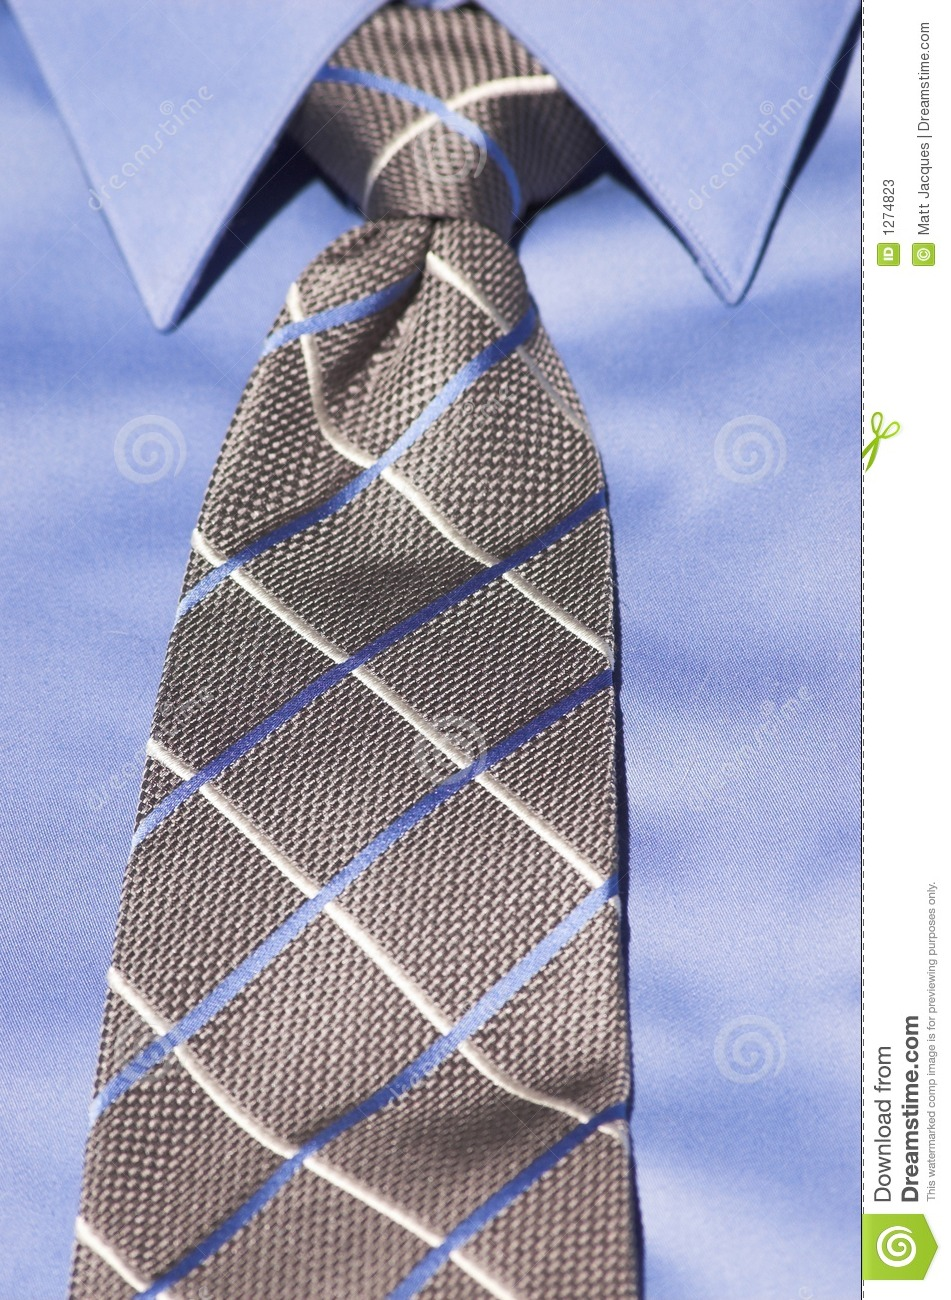 Blue shirt with striped tie stock photos image 1274823 for Striped shirt with tie